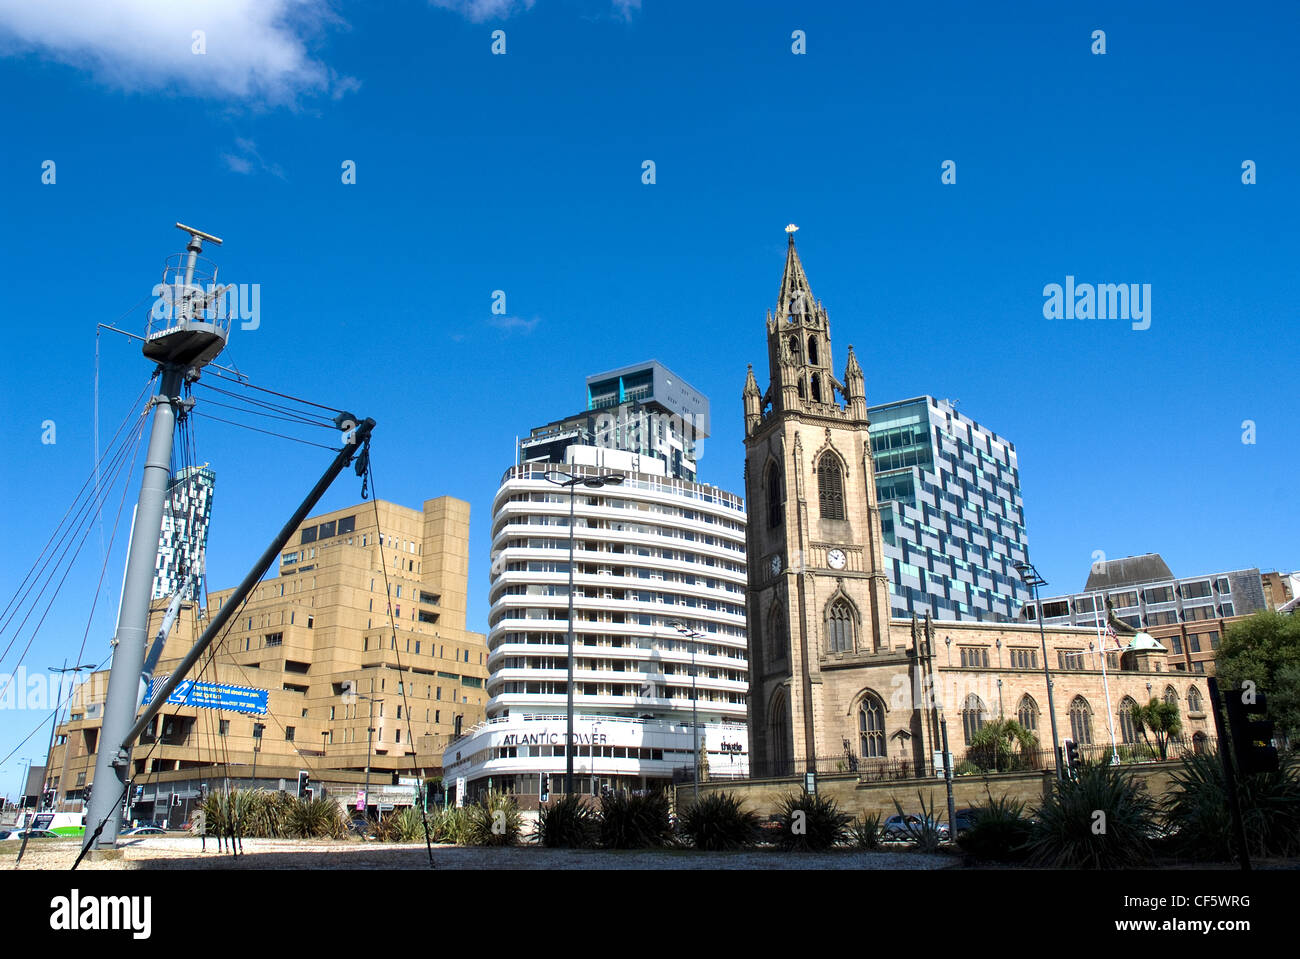 The Church of Our Lady and St Nicholas and The Atlantic Tower hotel on the quayside. Stock Photo